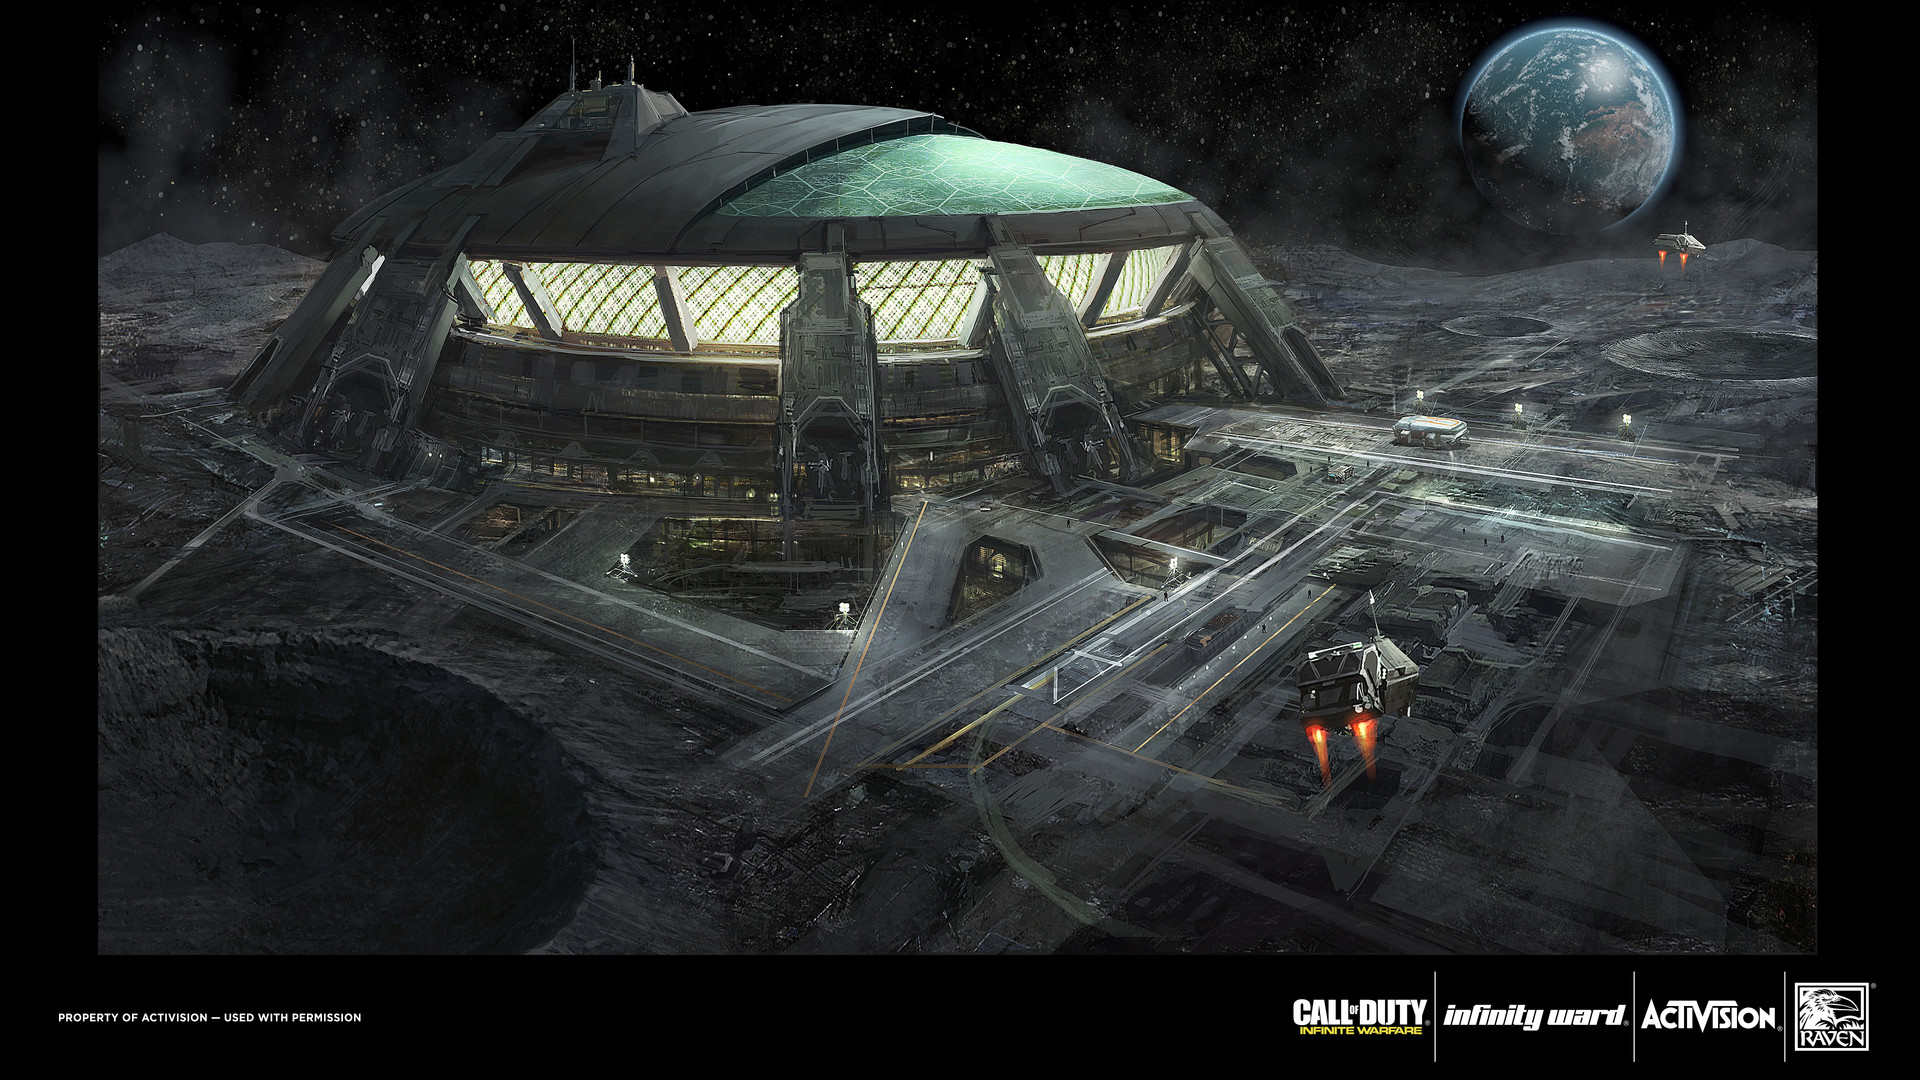 lunar colony in space - photo #20